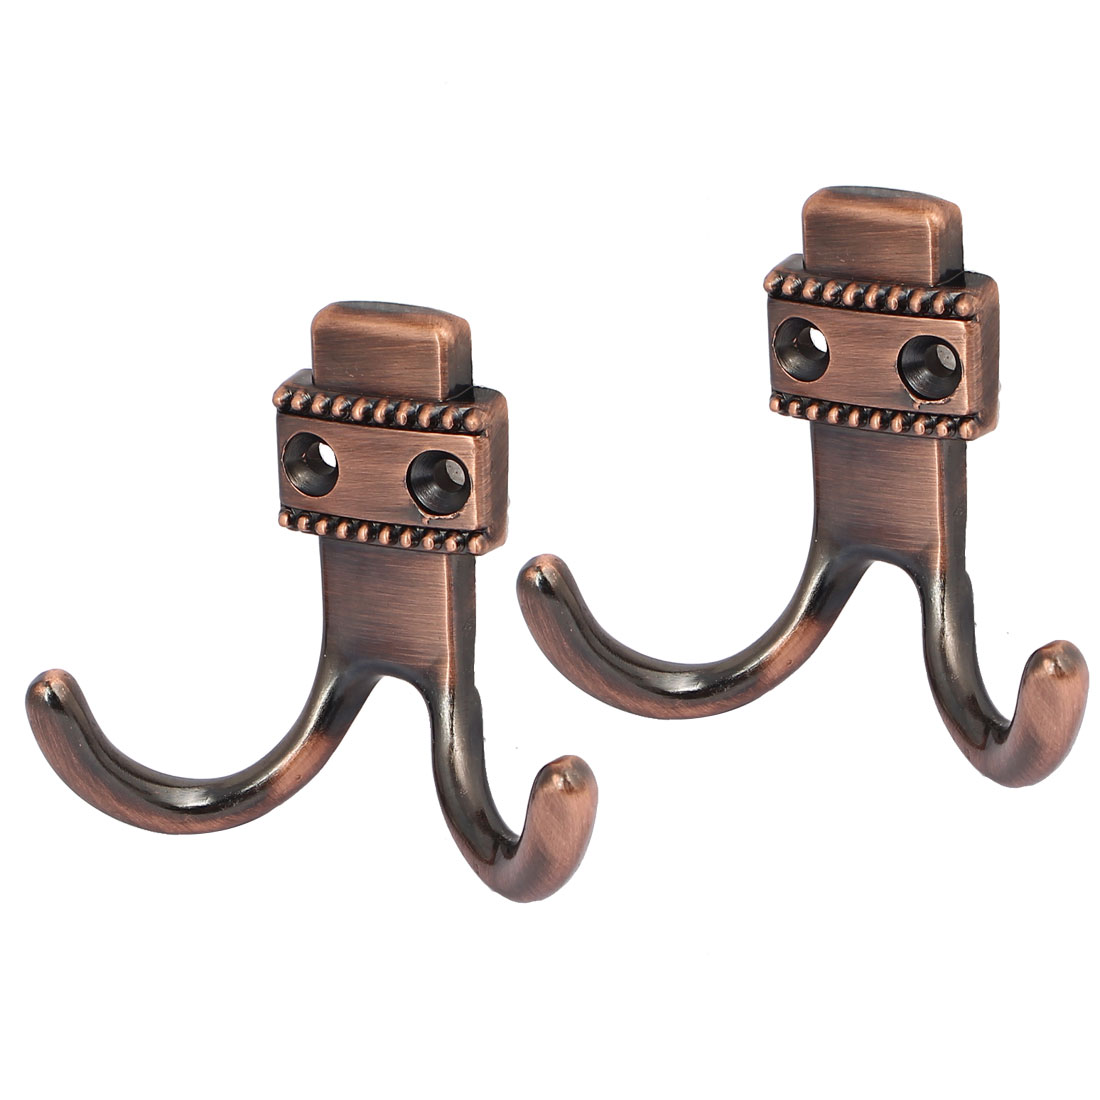 Bedroom Bathroom Pastoral Style Double Prong Hook Coat Towel Hanging Hanger Copper Tone 2pcs